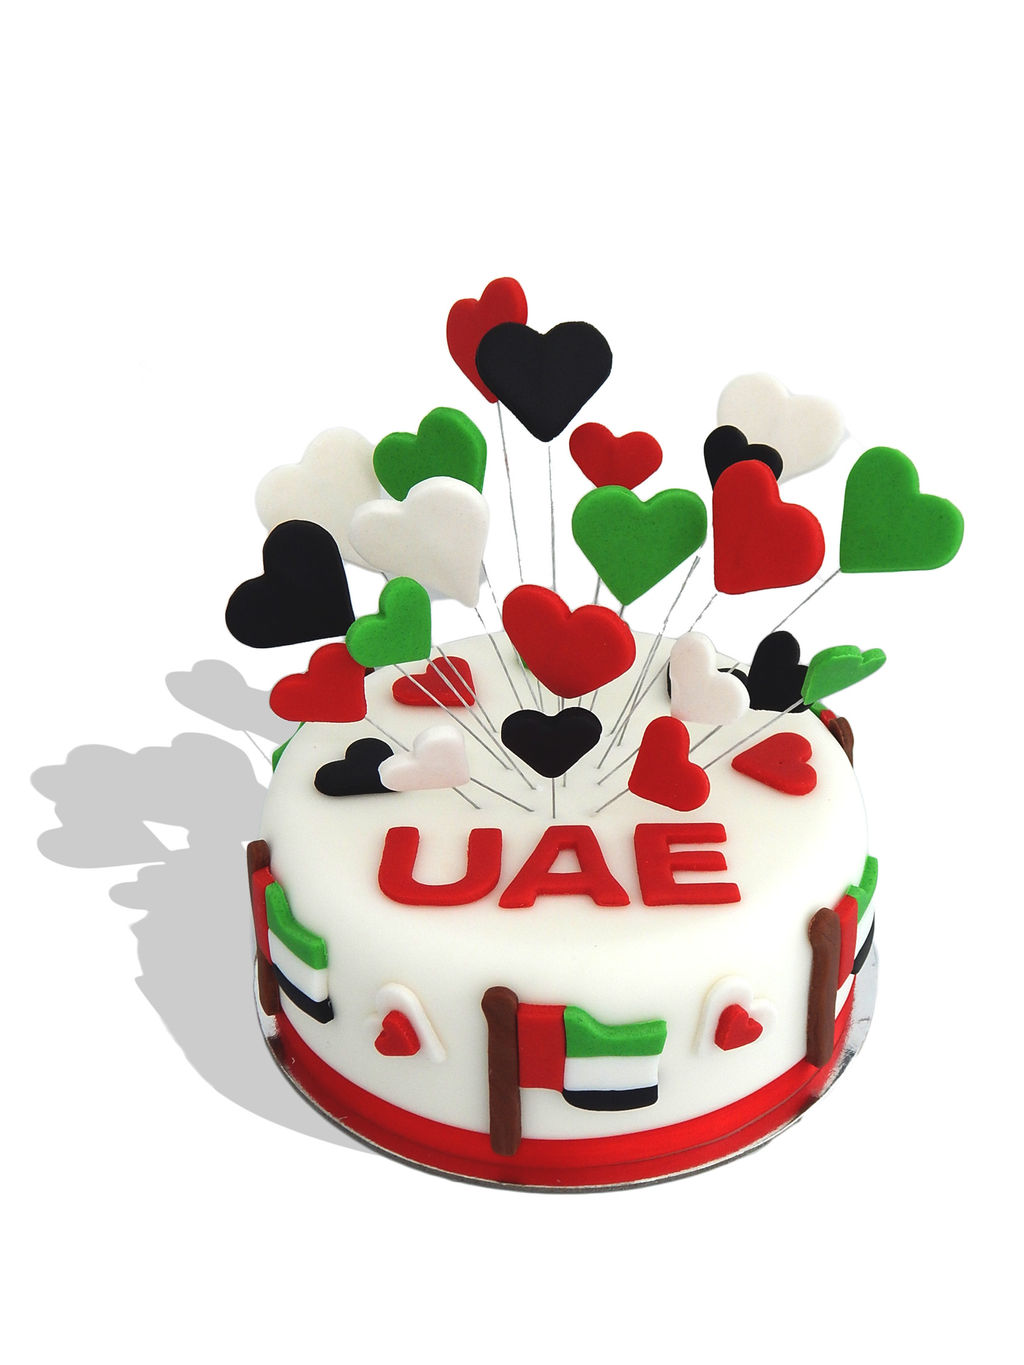 The design and supply of celebration cakes in Dubai